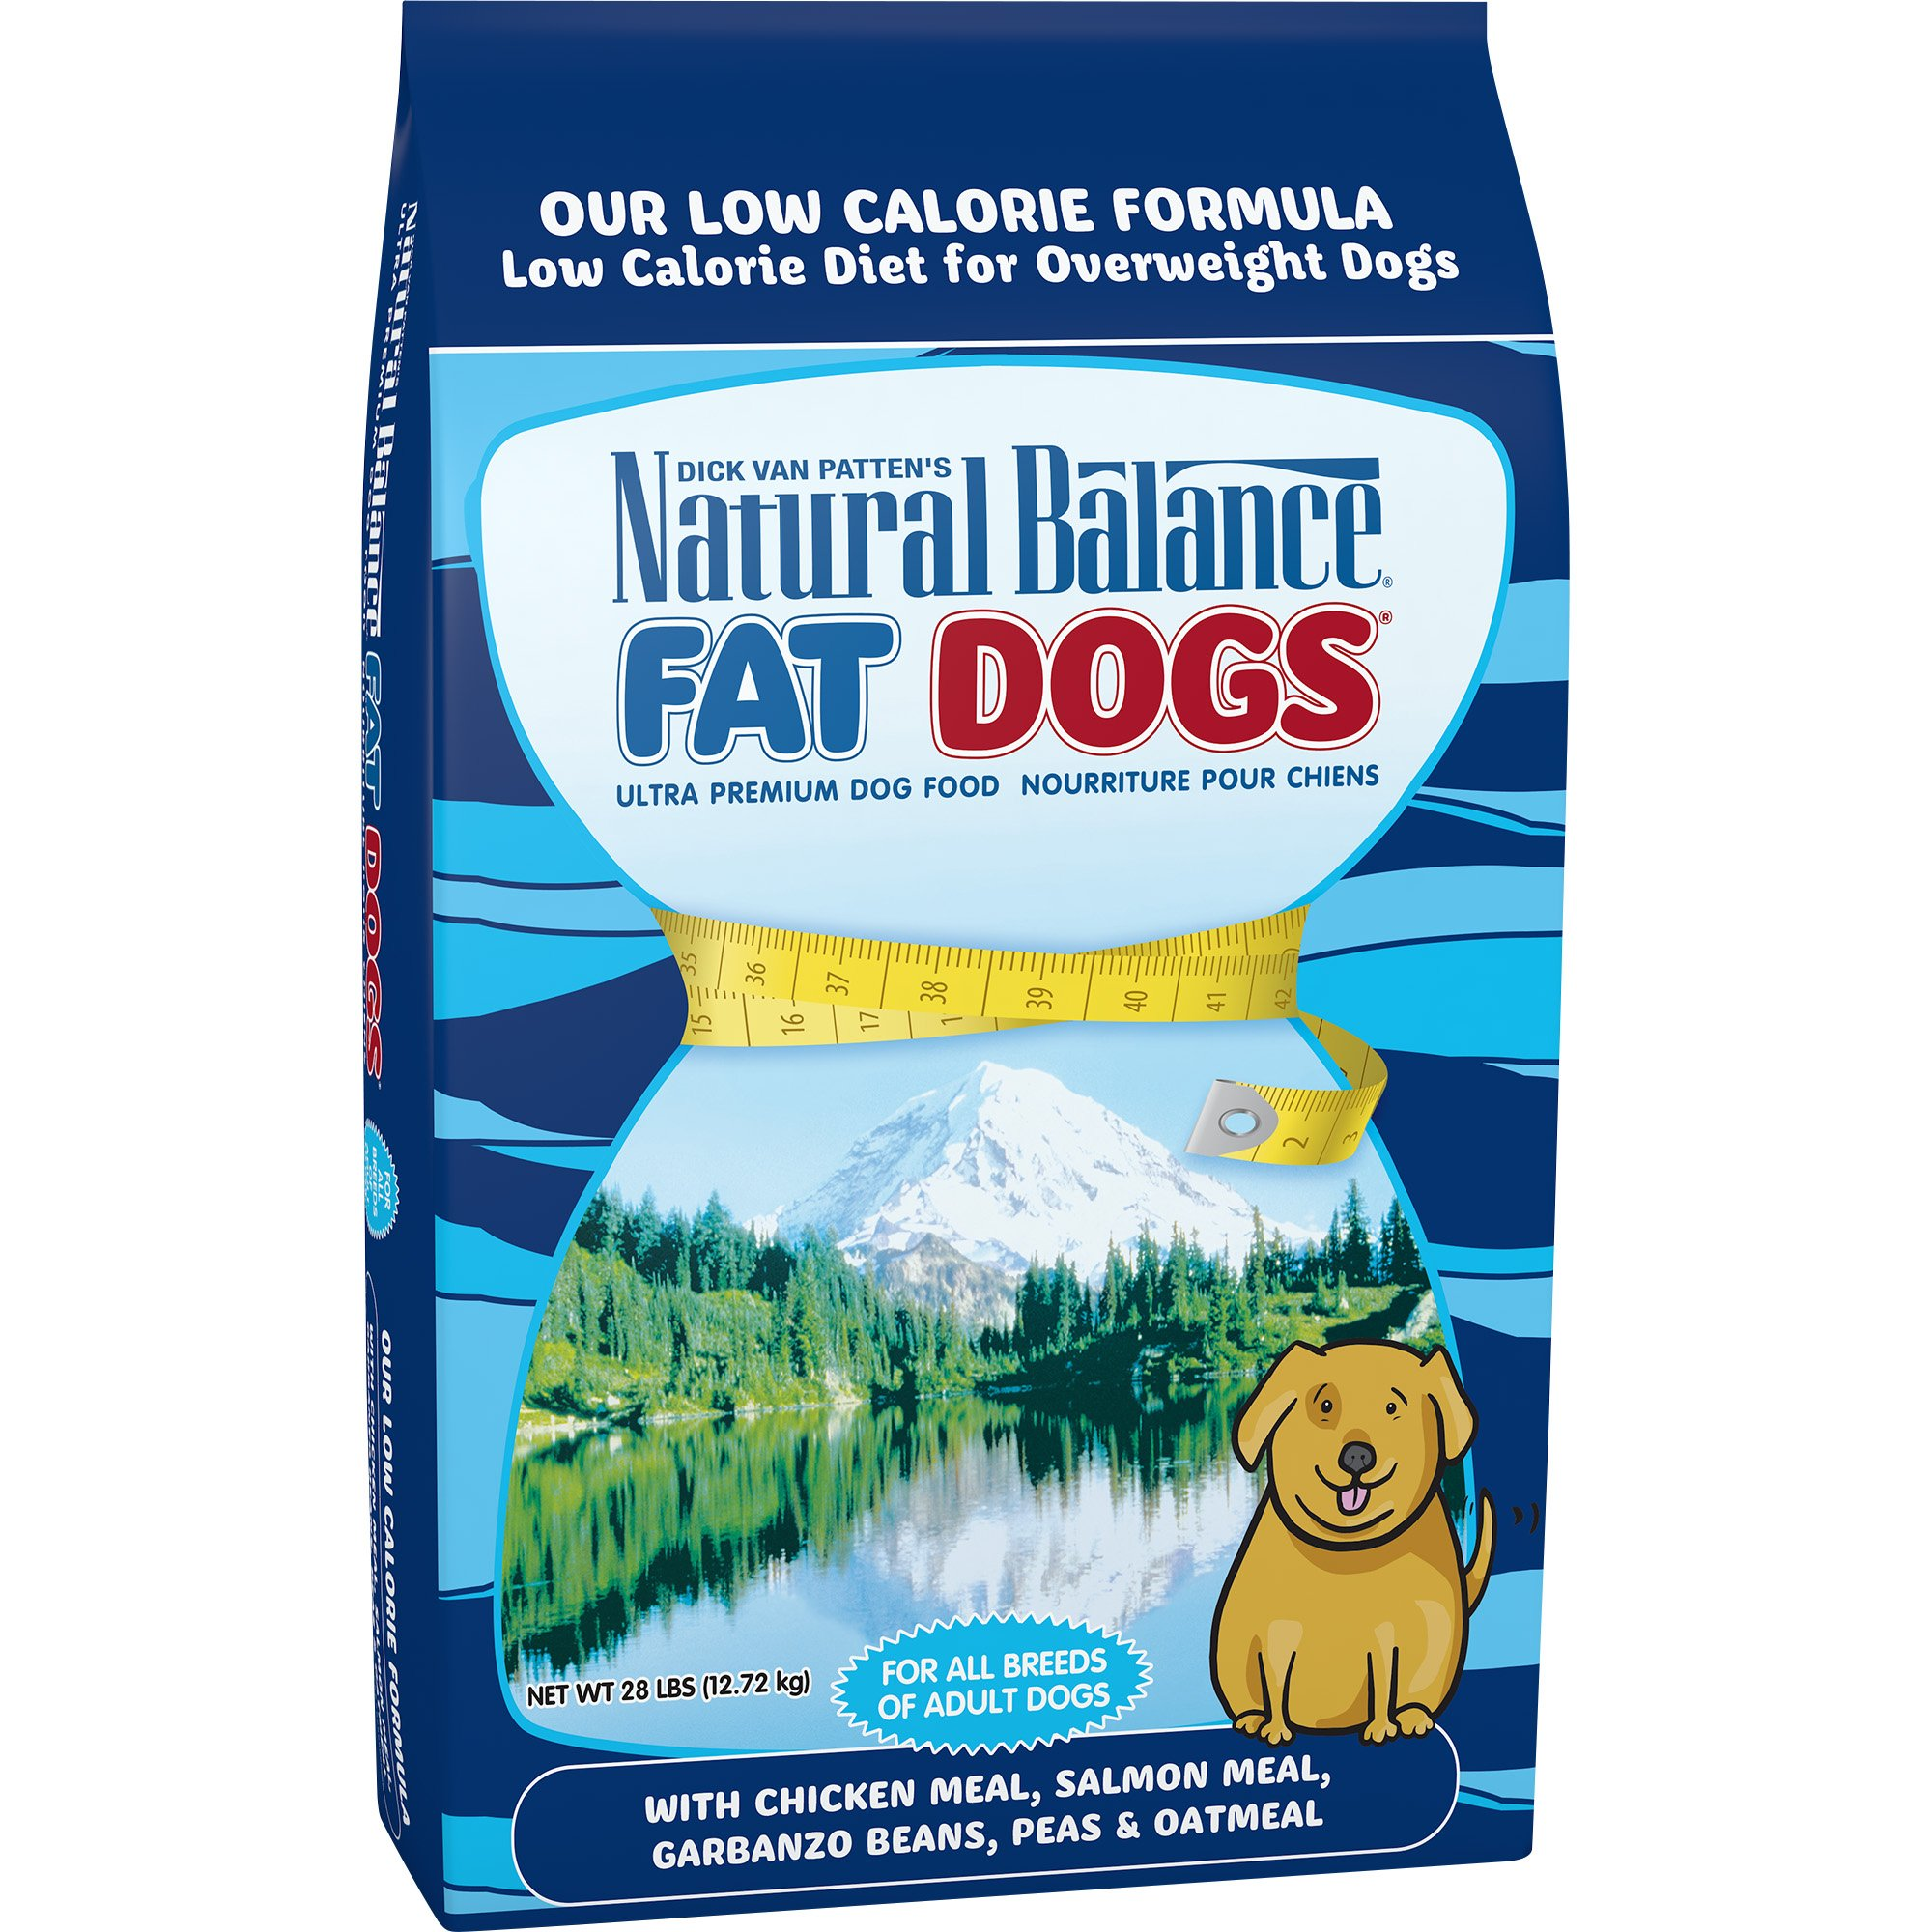 Natural Balance Fat Dogs Chicken Meal, Salmon Meal, Garbanzo Beans, Peas & Oatmeal Dry Dog Food, 28 Pounds by Natural Balance